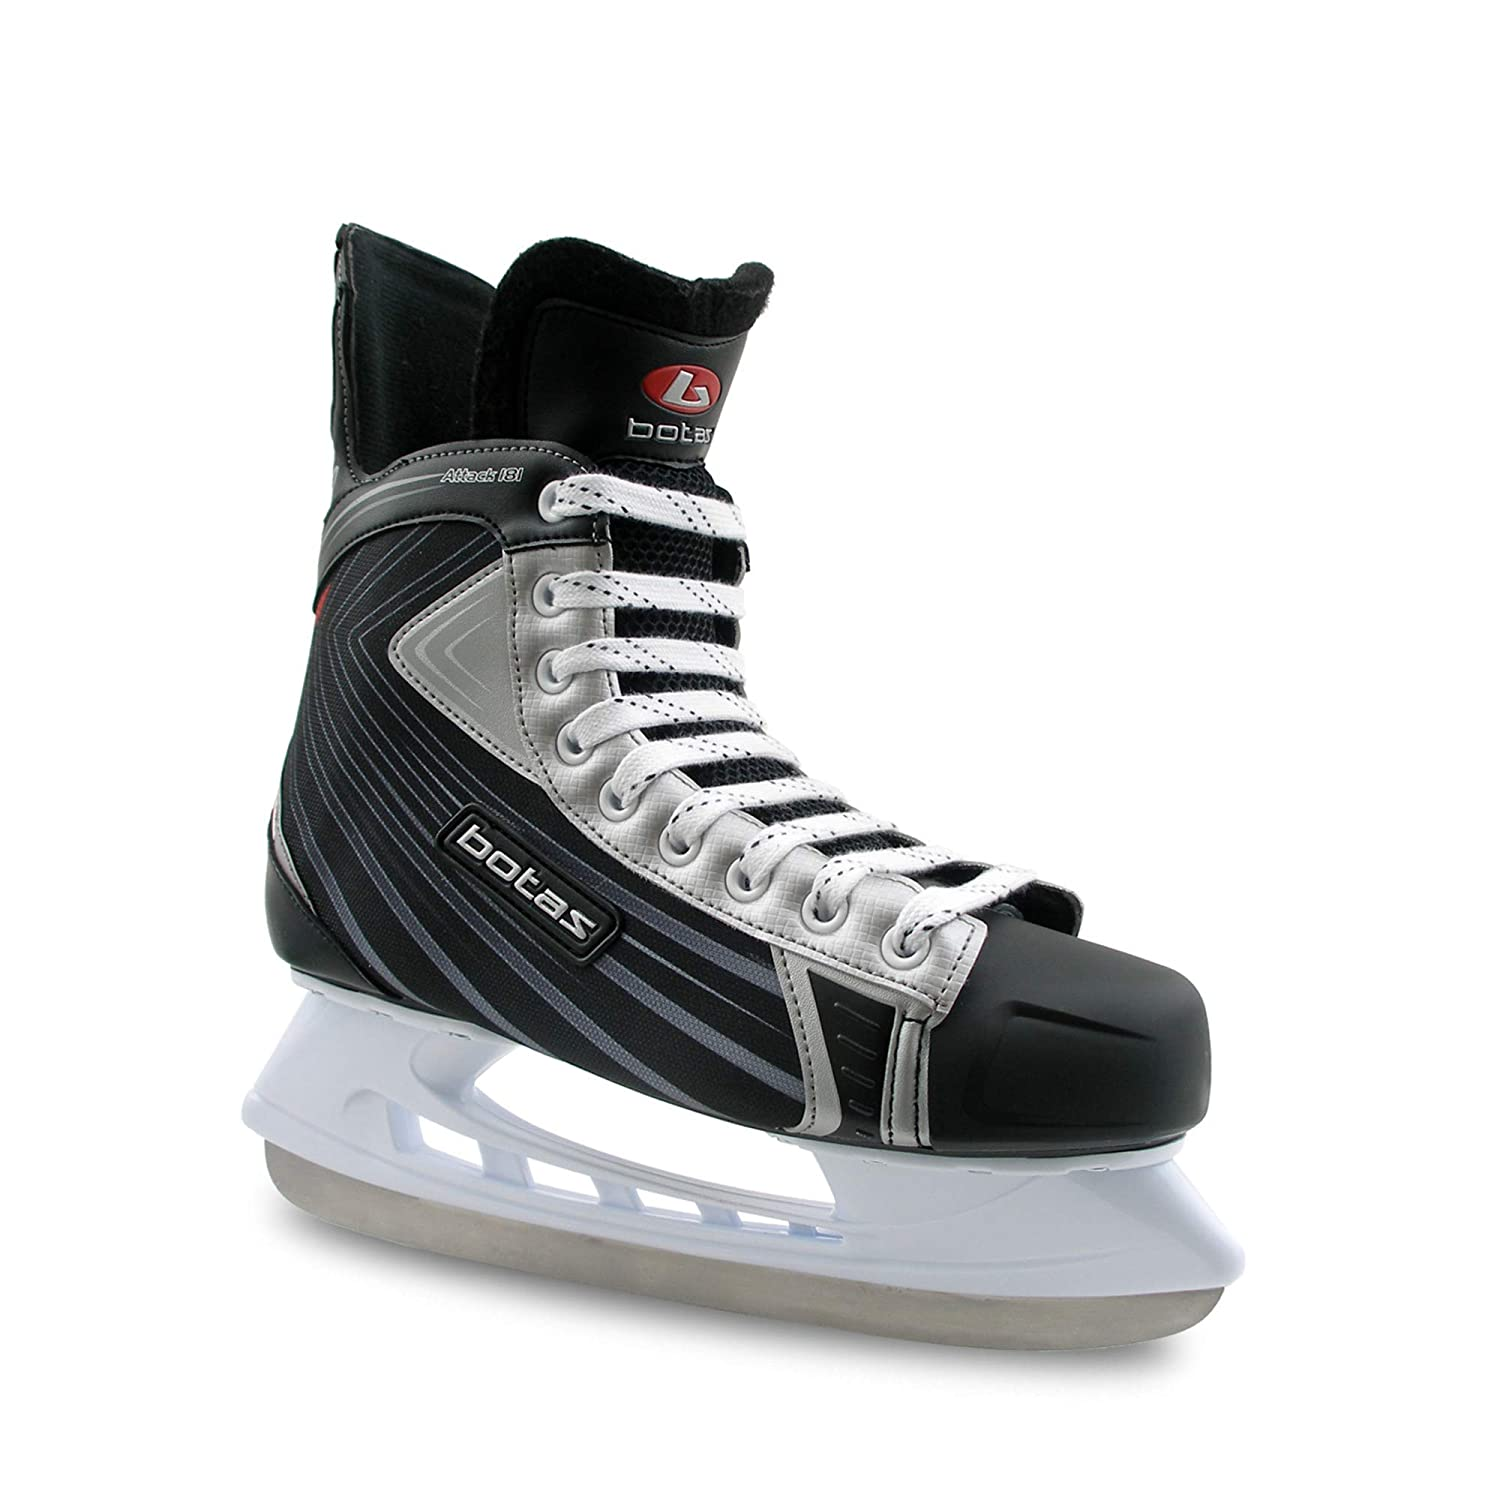 Botas - Attack 181 - Men's Ice Hockey Skates | Made in Europe (Czech Republic) | JUST Released 2018